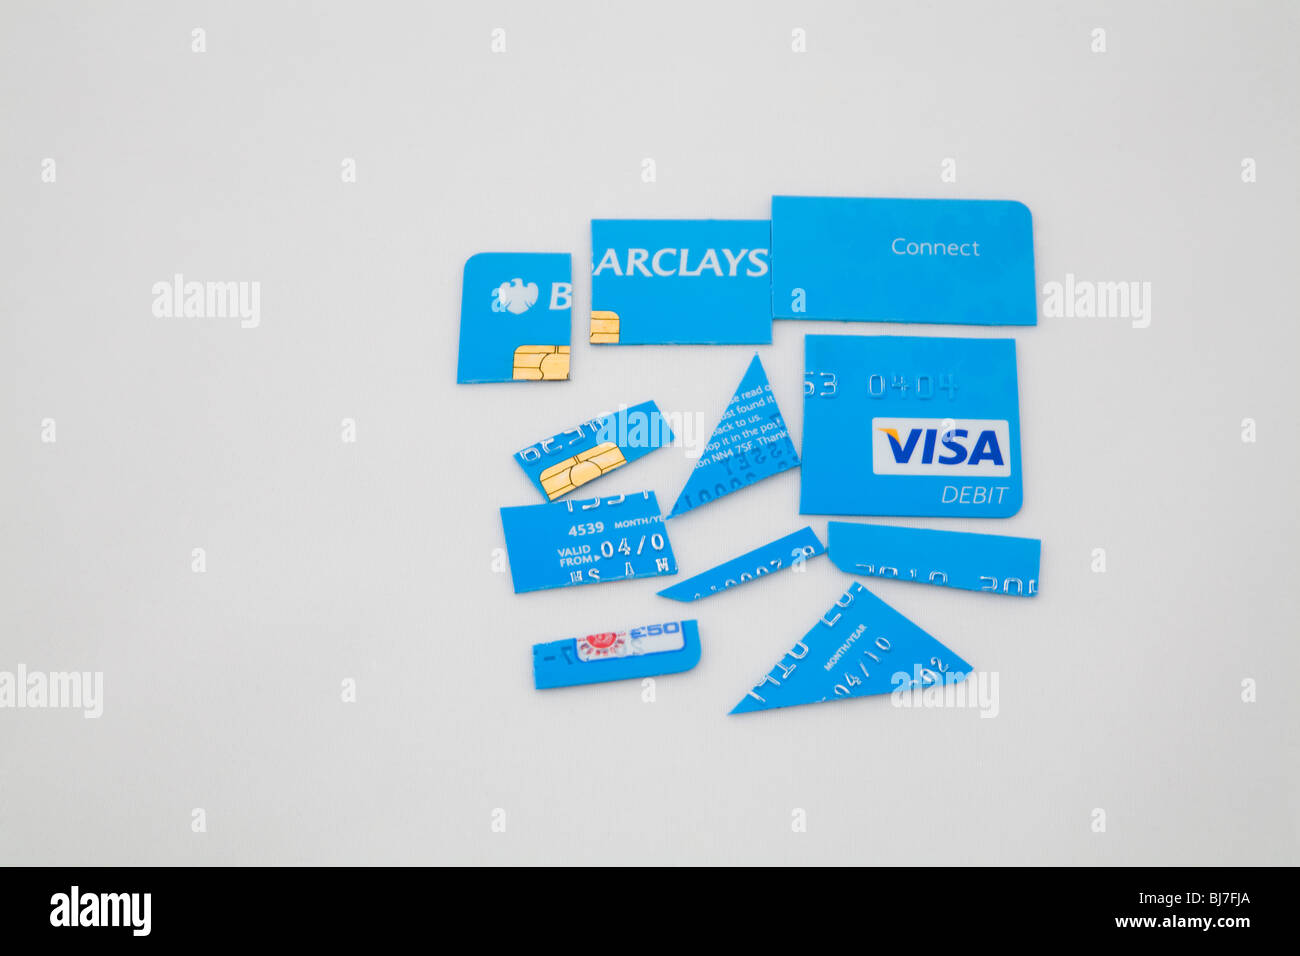 Barclays Design Your Own Debit Card